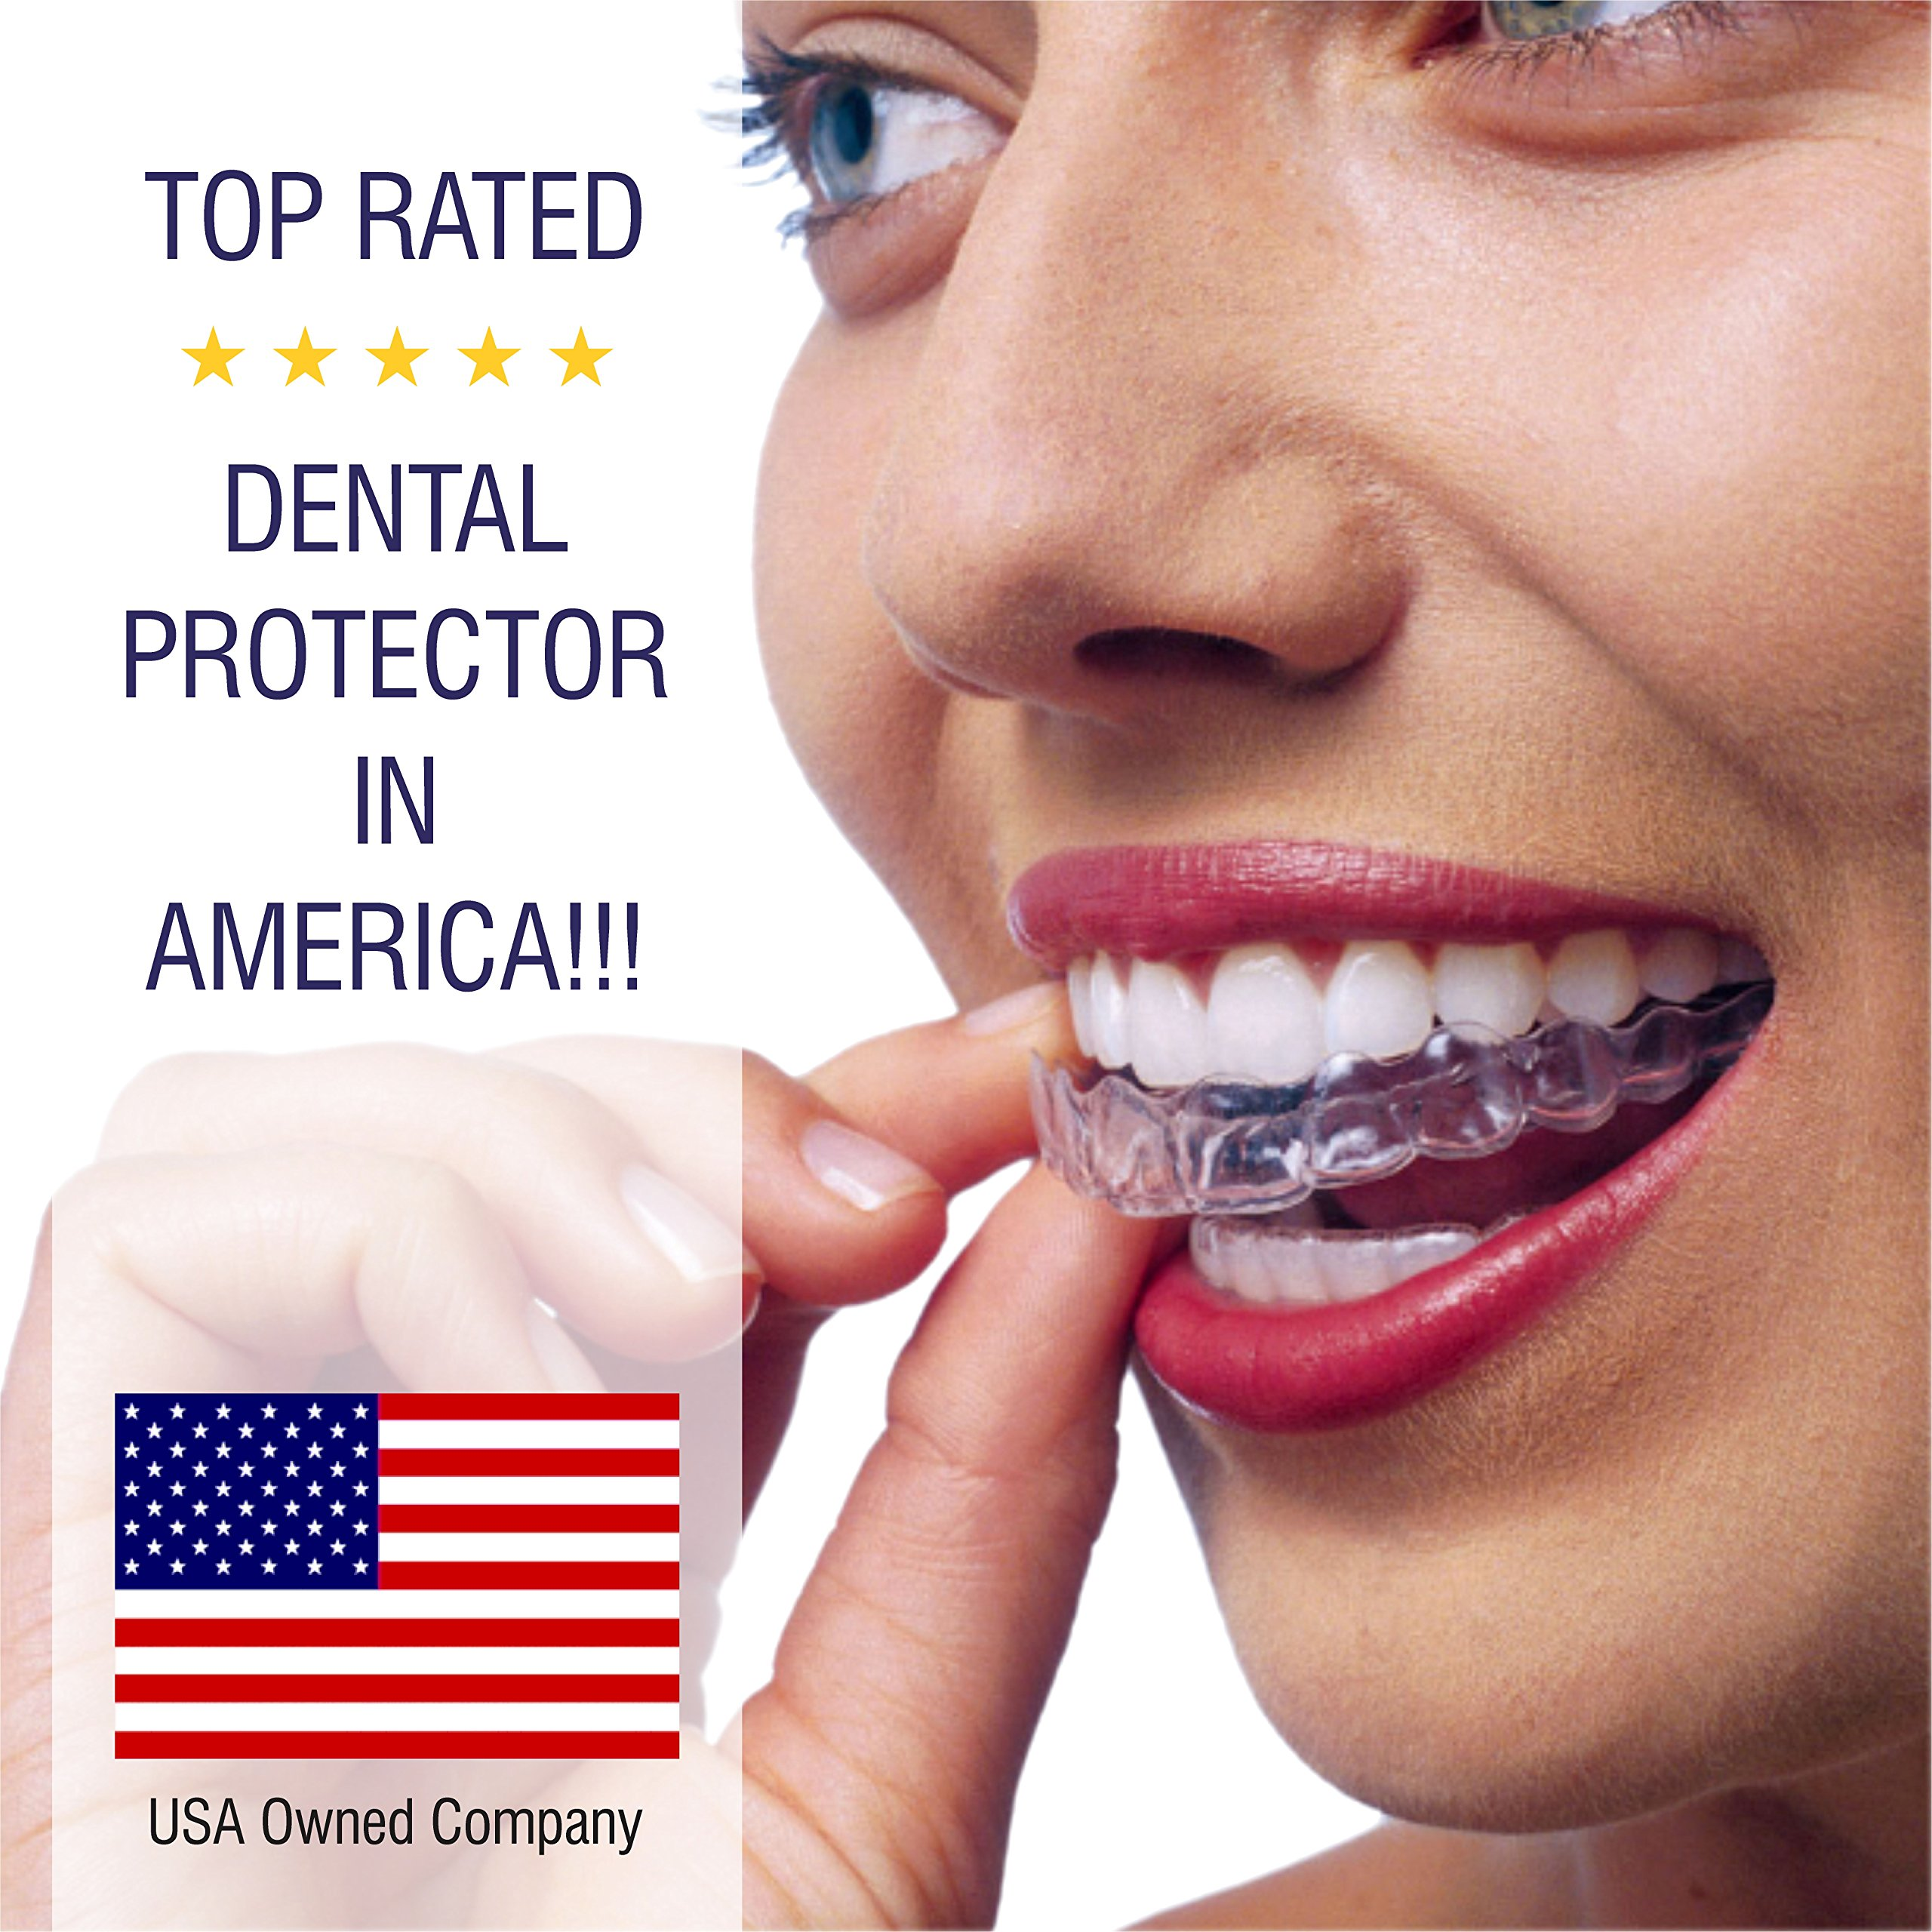 Professional Dental Guard -Pack Of 4- Stops Teeth Grinding, Bruxism, Eliminates Teeth Clenching Includes Fitting Instructions & Anti-Bacterial Case. Satisfaction Is Guaranteed! by Dental Duty (Image #8)